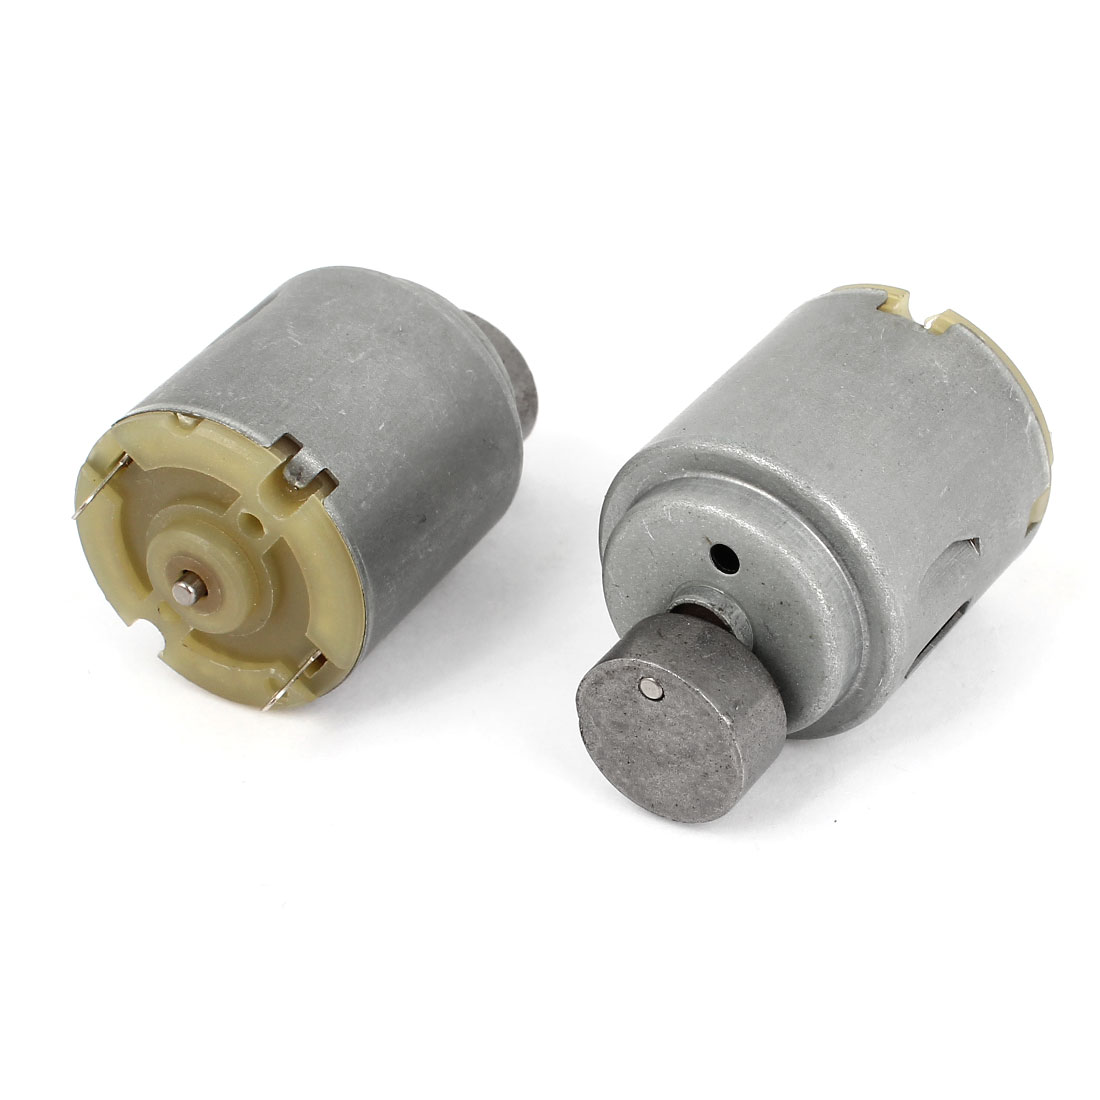 2pcs DC 3-12V 2000RPM Torque Cylinderical Electric Vibration Motor